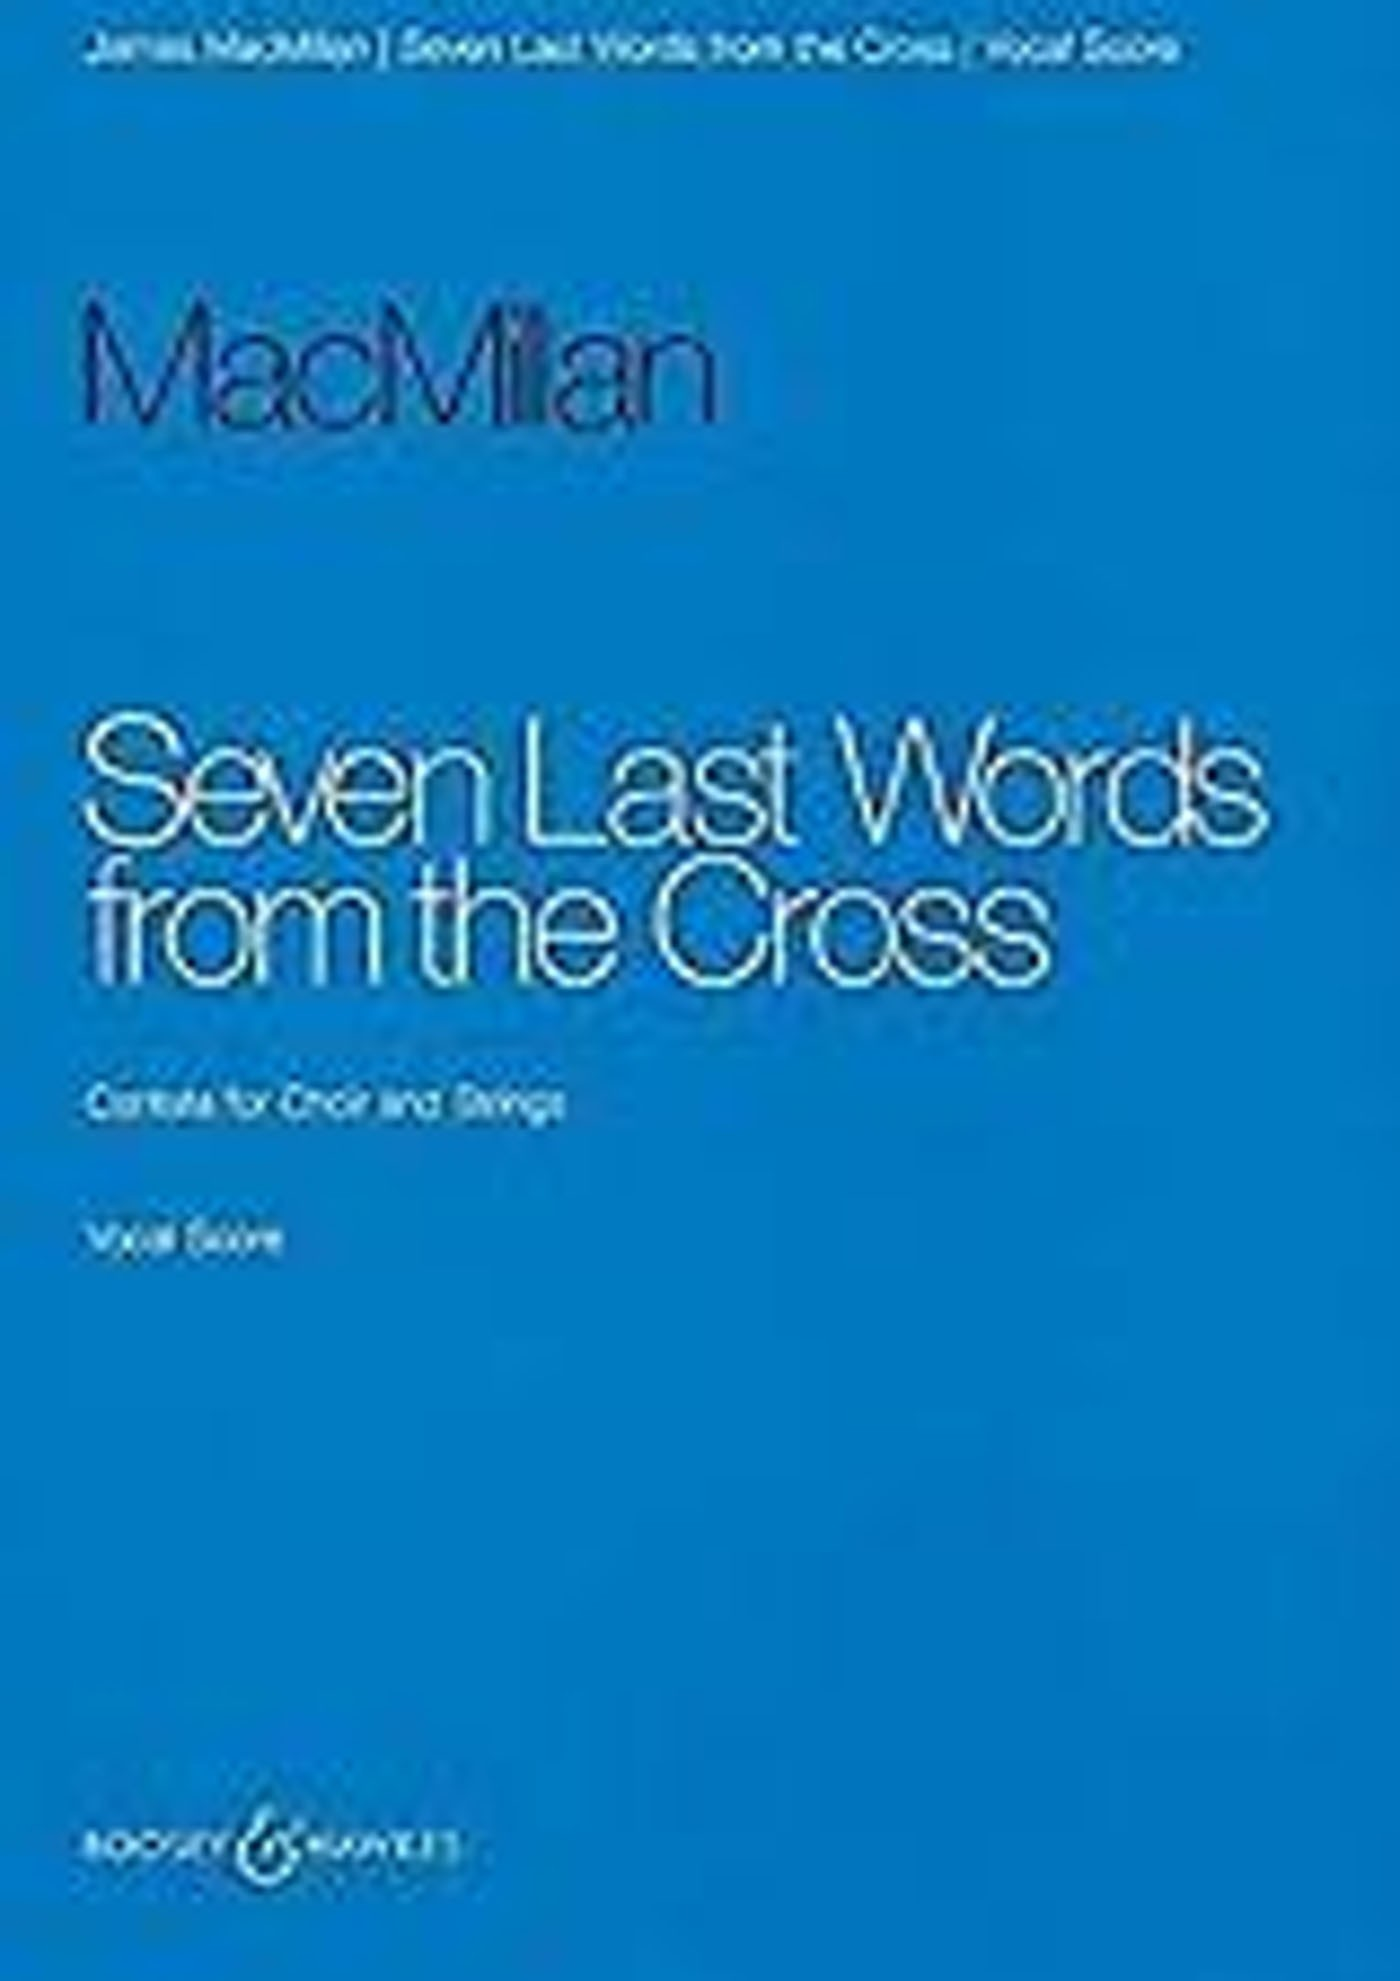 Seven Last Words from the Cross James MacMillan SATB Vocal Score & Piano S166